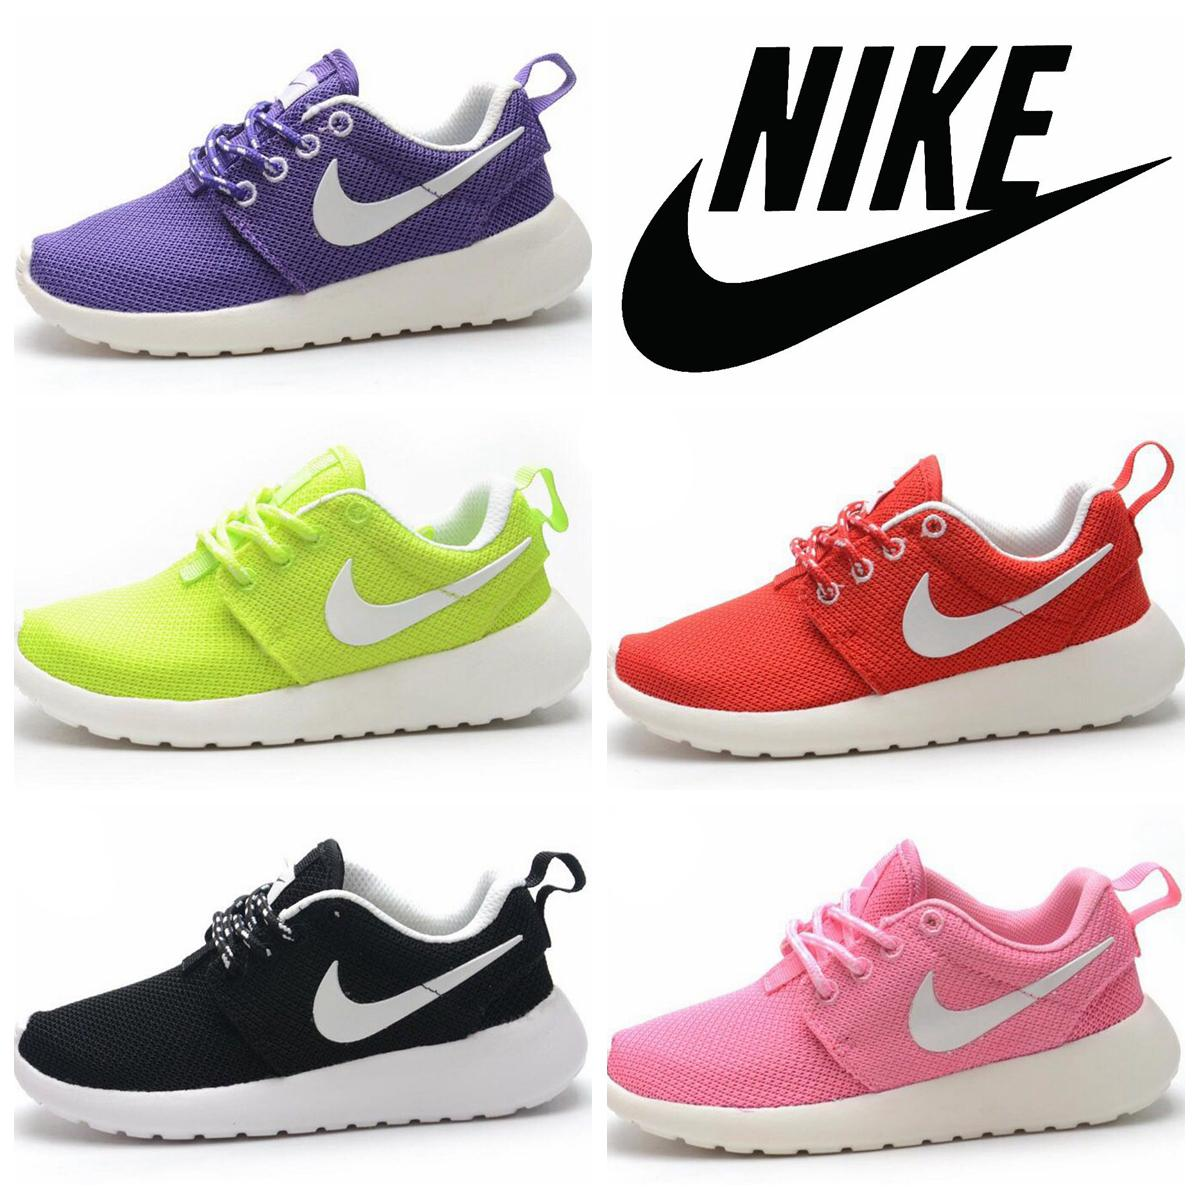 Nike Roshe Run Childrens Athletic Shoes Boys And Girls ...